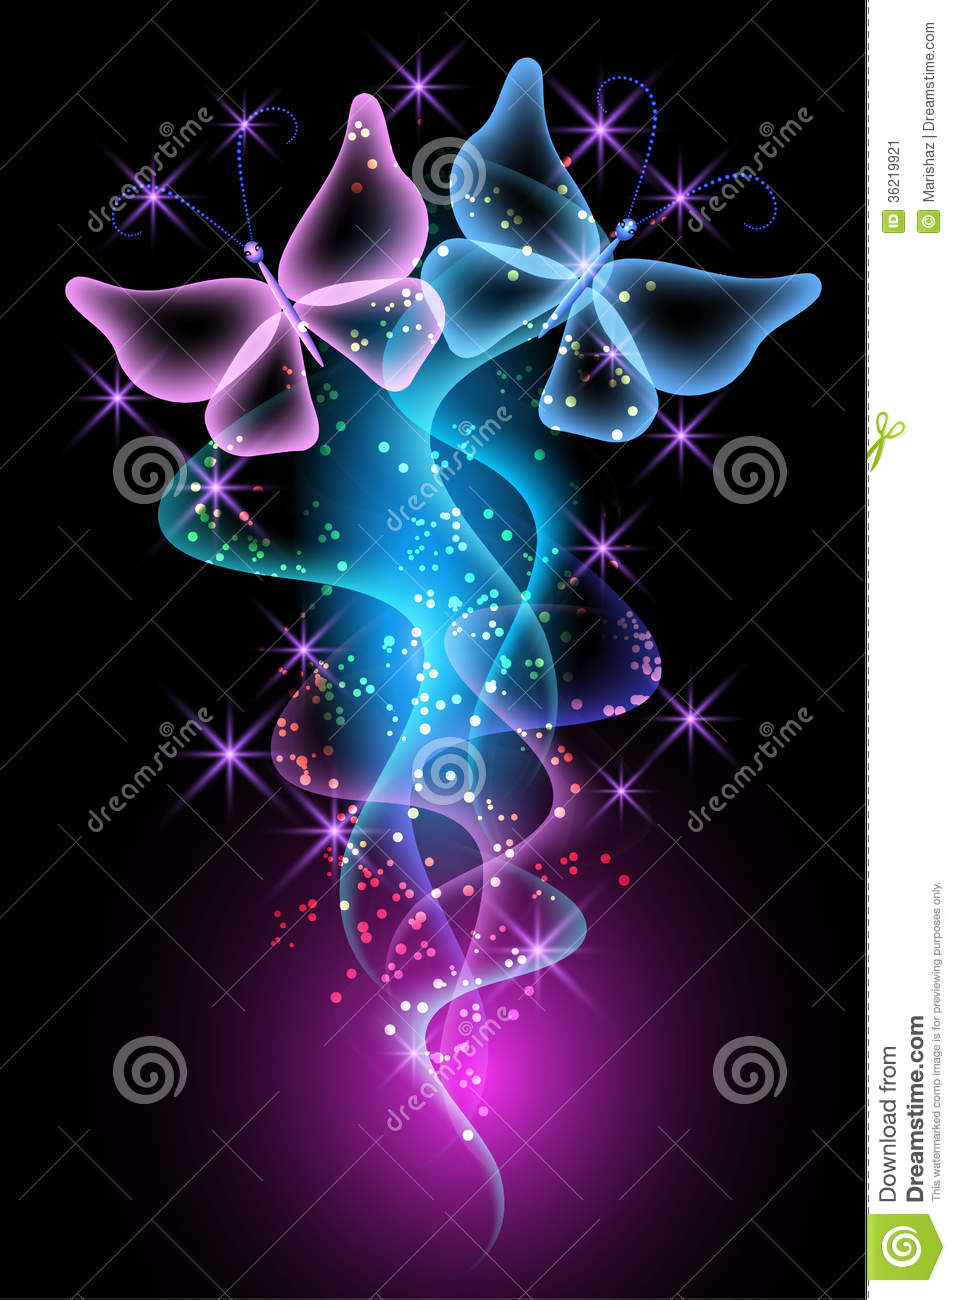 Magic Transparent Butterfly Stock Image - Image: 36219921